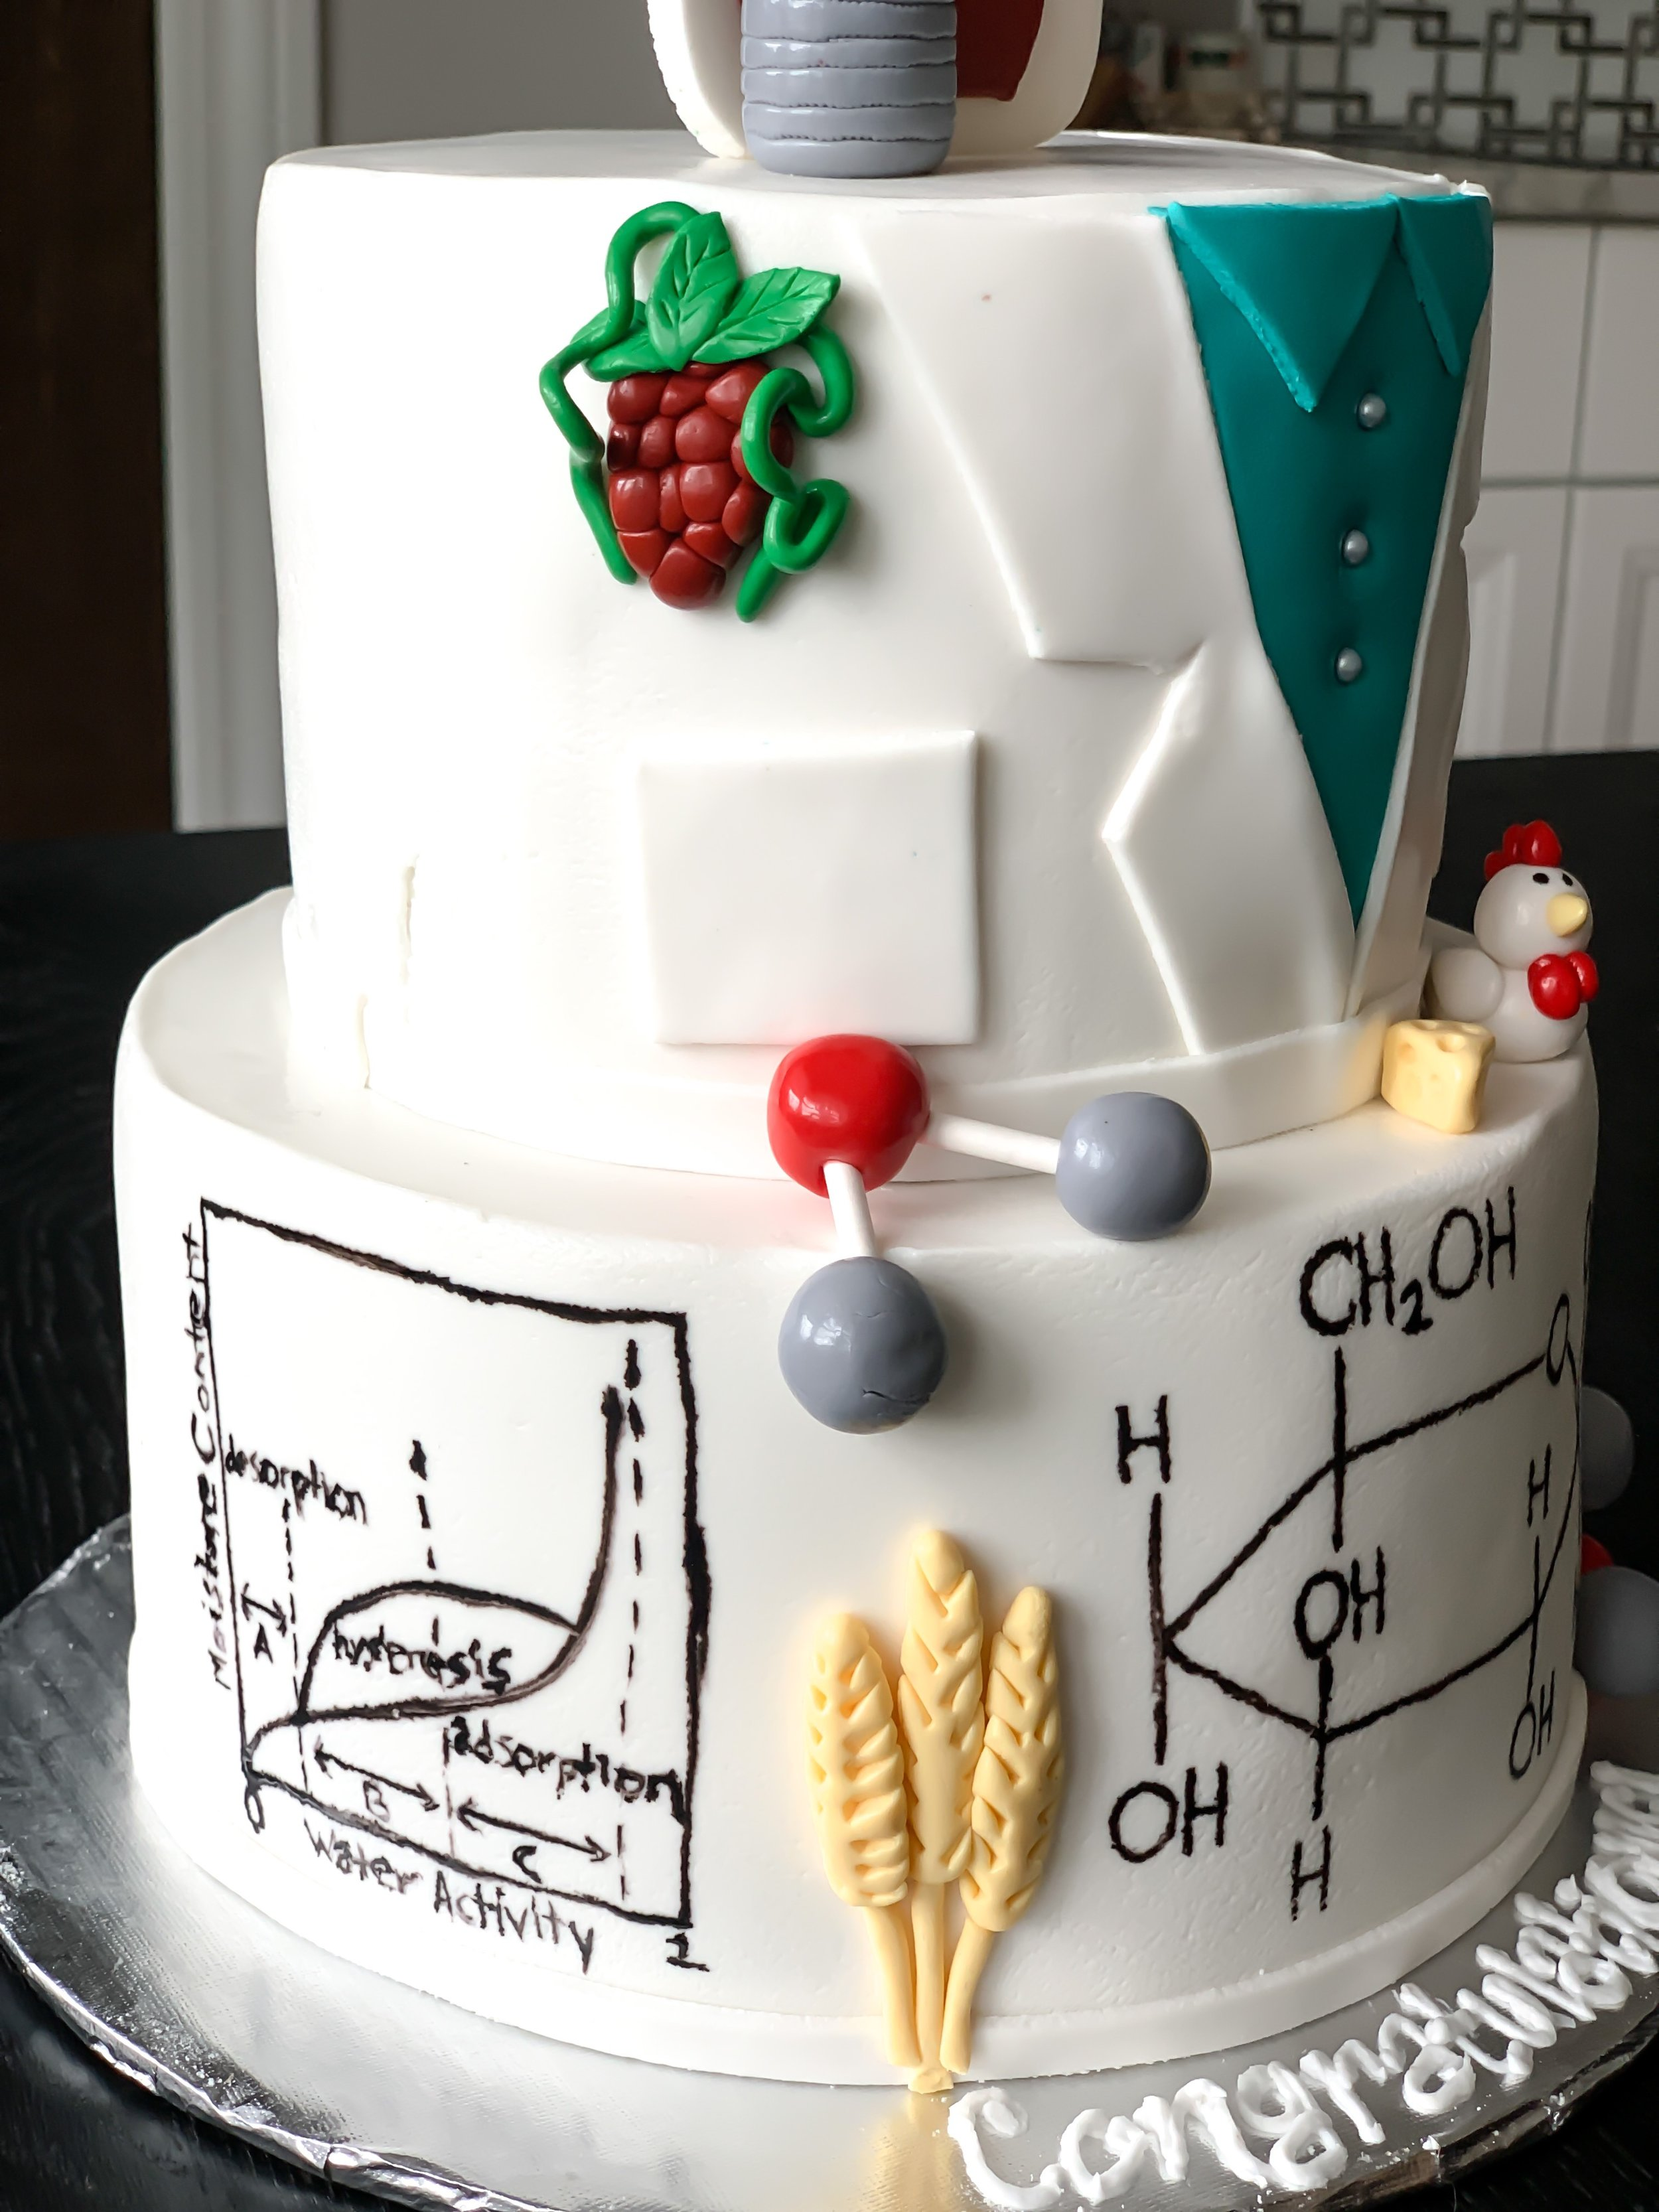 Food Science Cake Decor Ideas. Water Sorption Isotherm Chart on cake. Fermentation cake. Glucose molecule cake. Isotherm cake. Science graduation and birthday cake ideas. Agricultural Science Cake decor.  Food Chemistry cake decor. Erlenmeyer flask cake ideas. Wheat stalk cake. Water molecule and chemical structure cake ideas. Lab coat cake for scientist. Cake ides for scientist. Science cake ideas. Baker science cakes. #FoodScience #Cake #ideas #science #graduation #sorption #isotherm